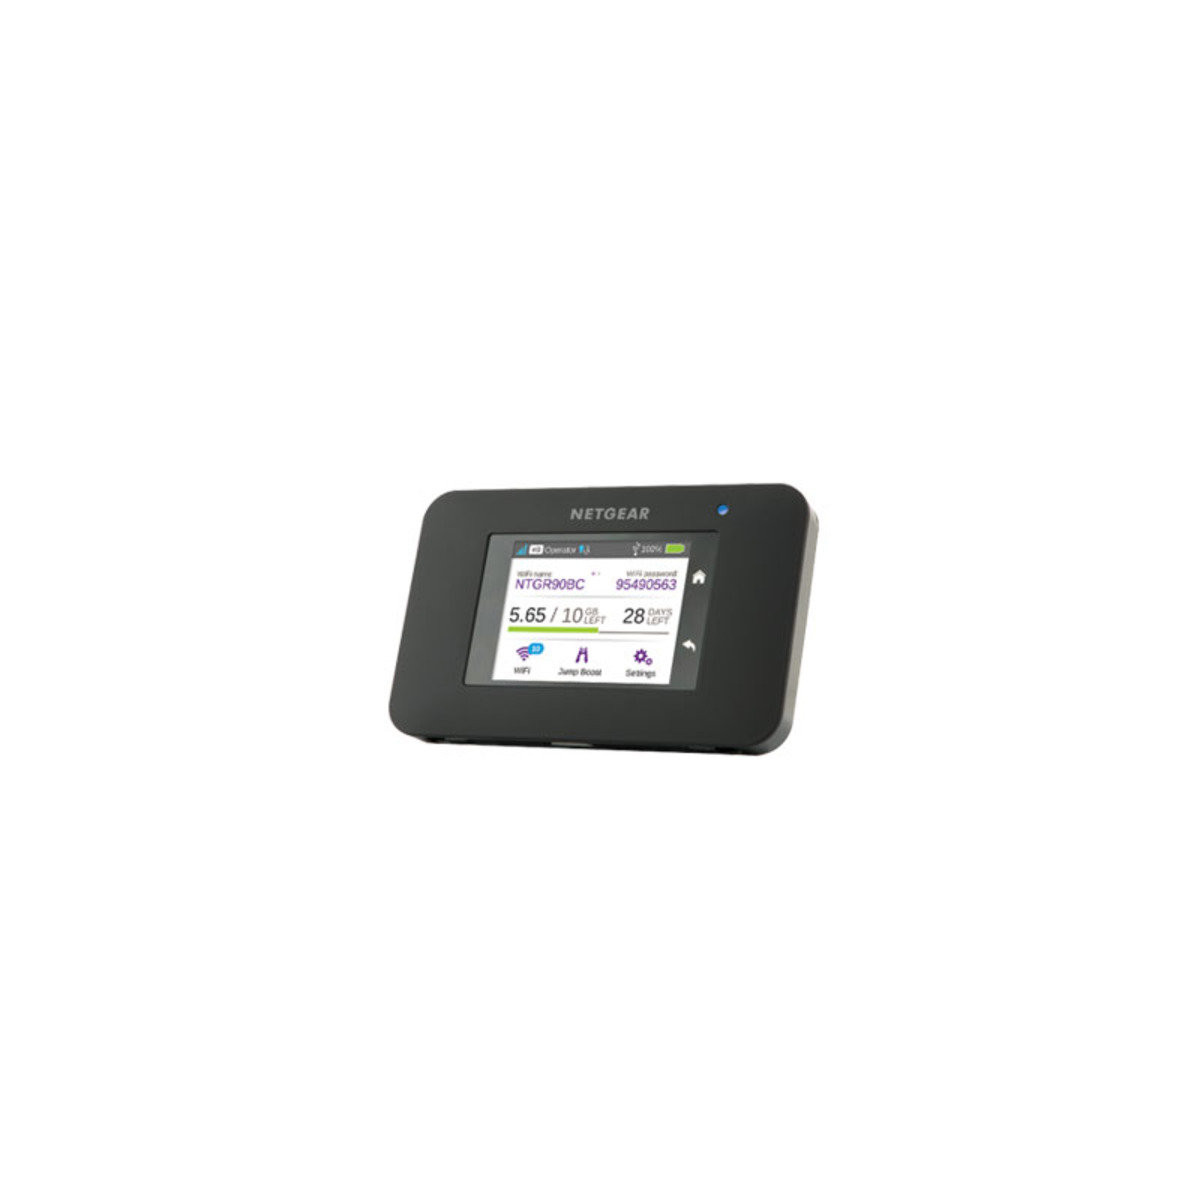 300Mbps 4G-LTE 行動網絡熱點分享器 AirCard 790